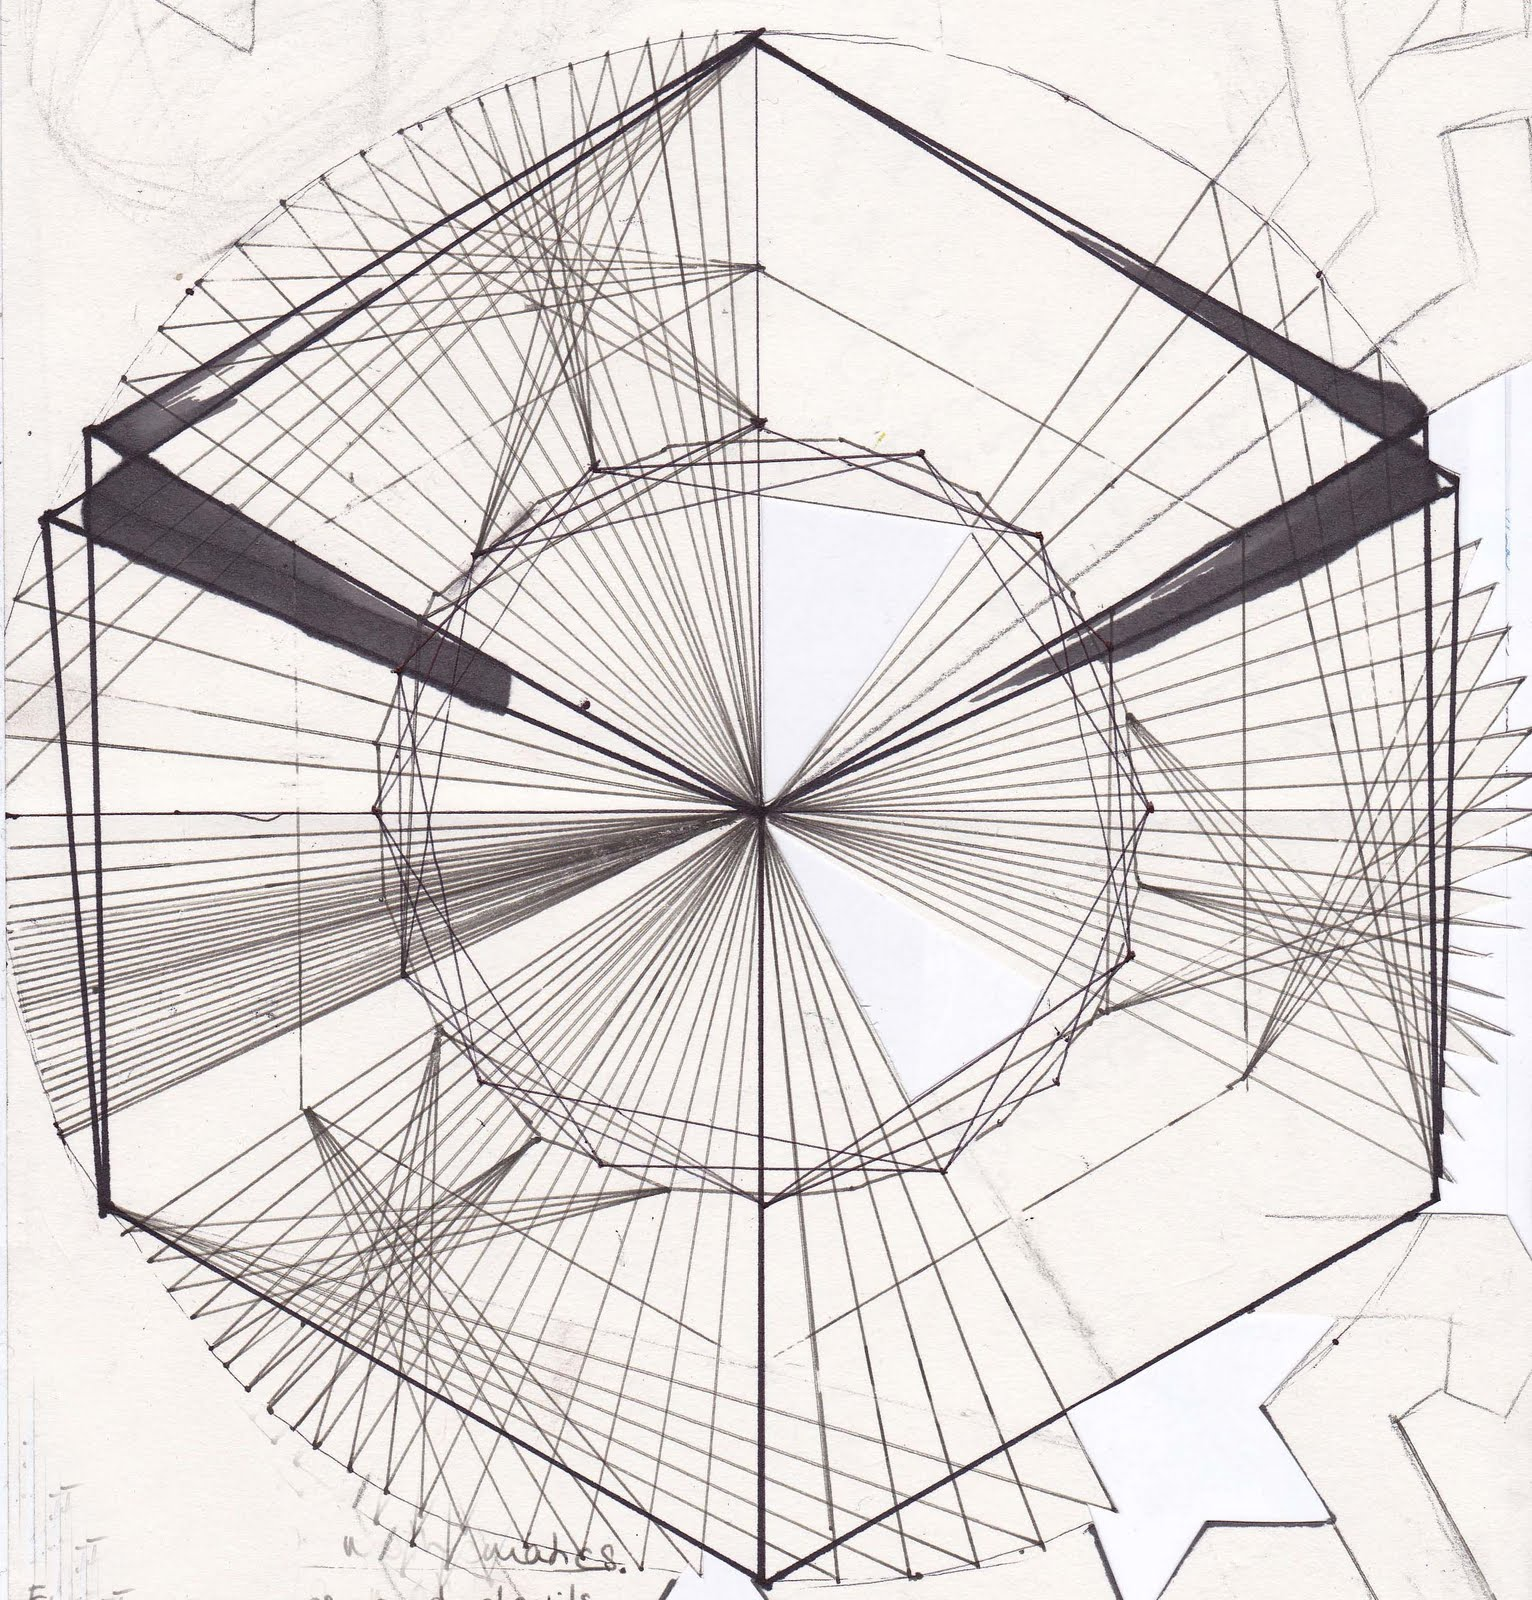 Alexandra Evans: Projective geometry and movement